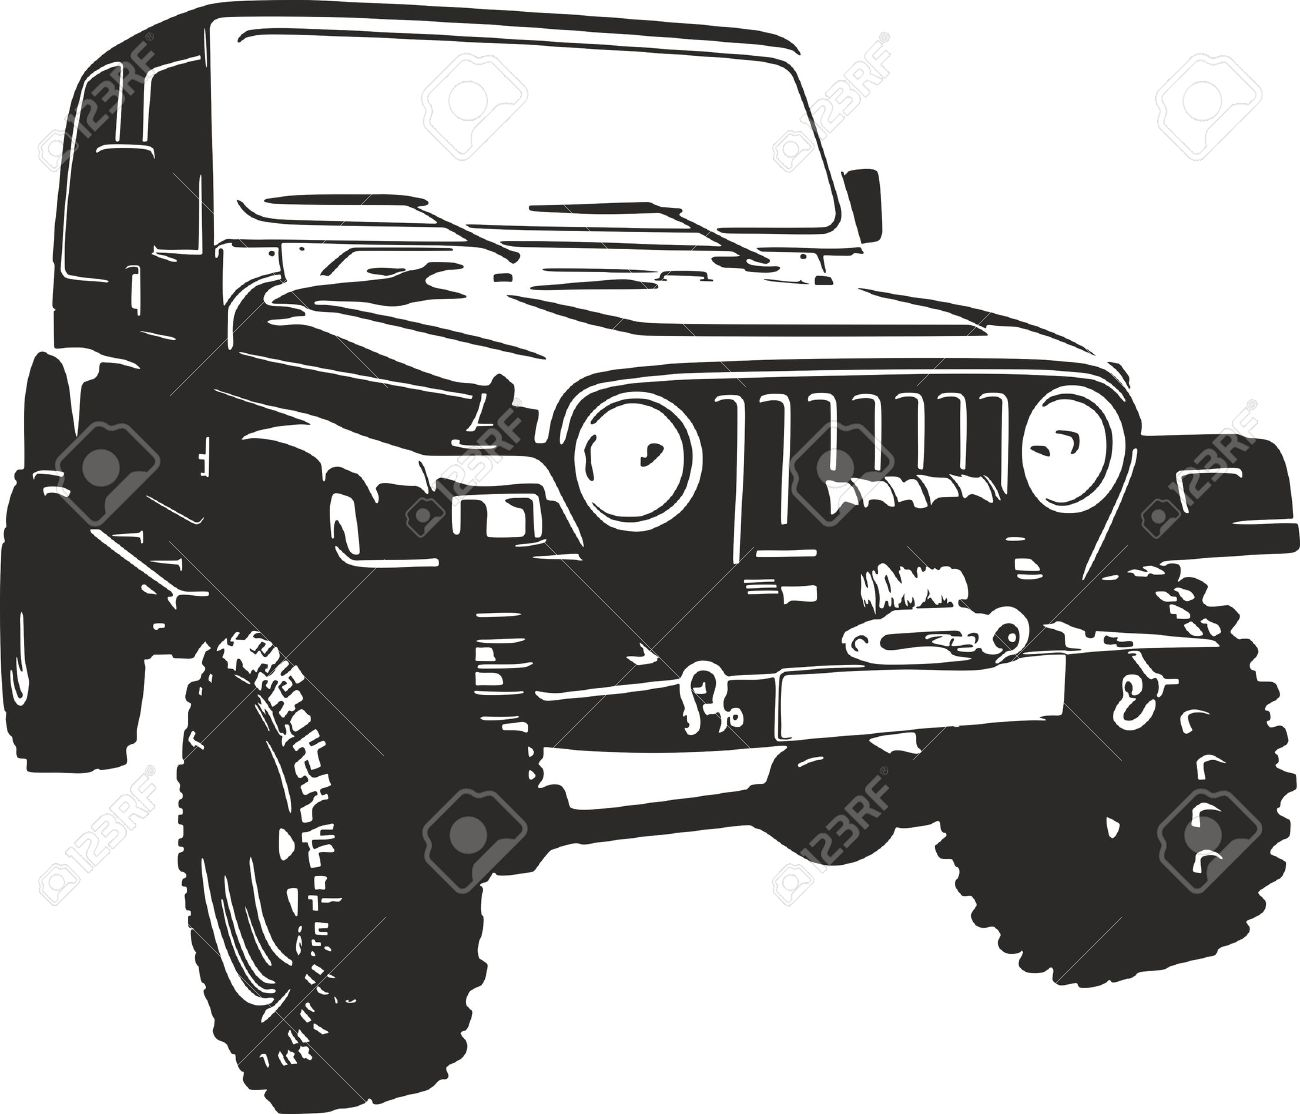 Offroad vehicle in black color.